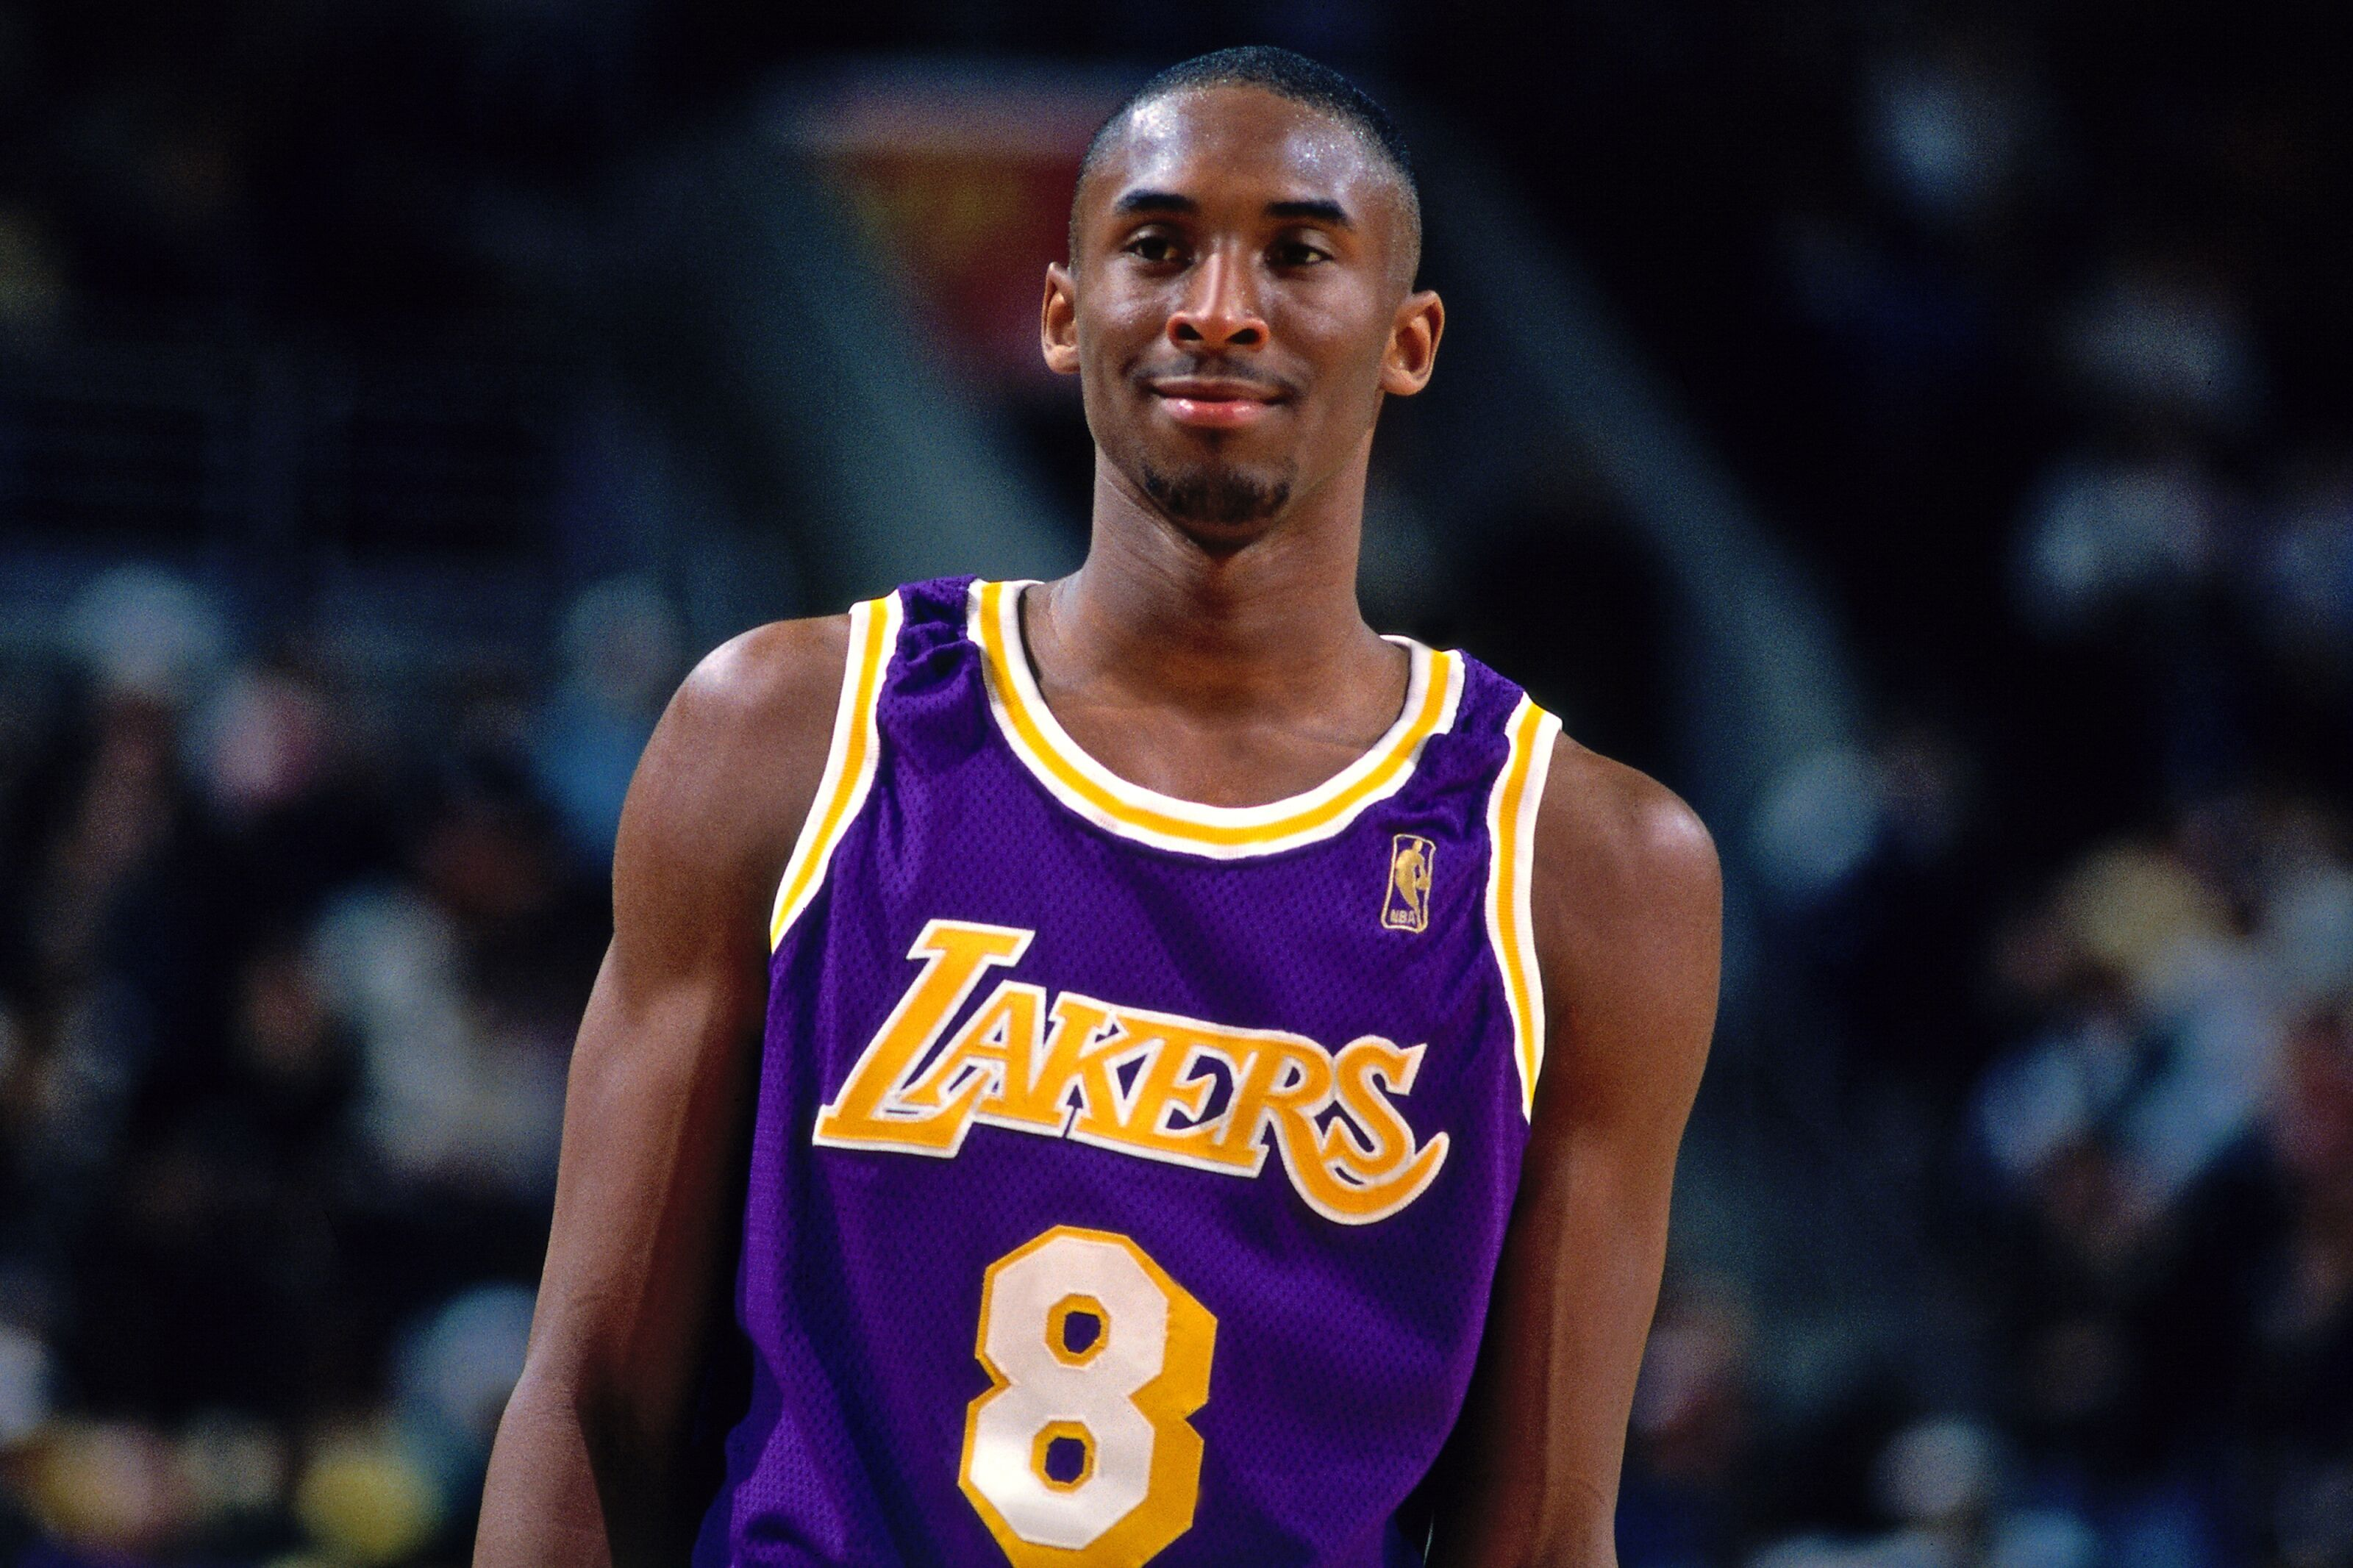 Twitter unravels at the news of Kobe Bryant's tragic death